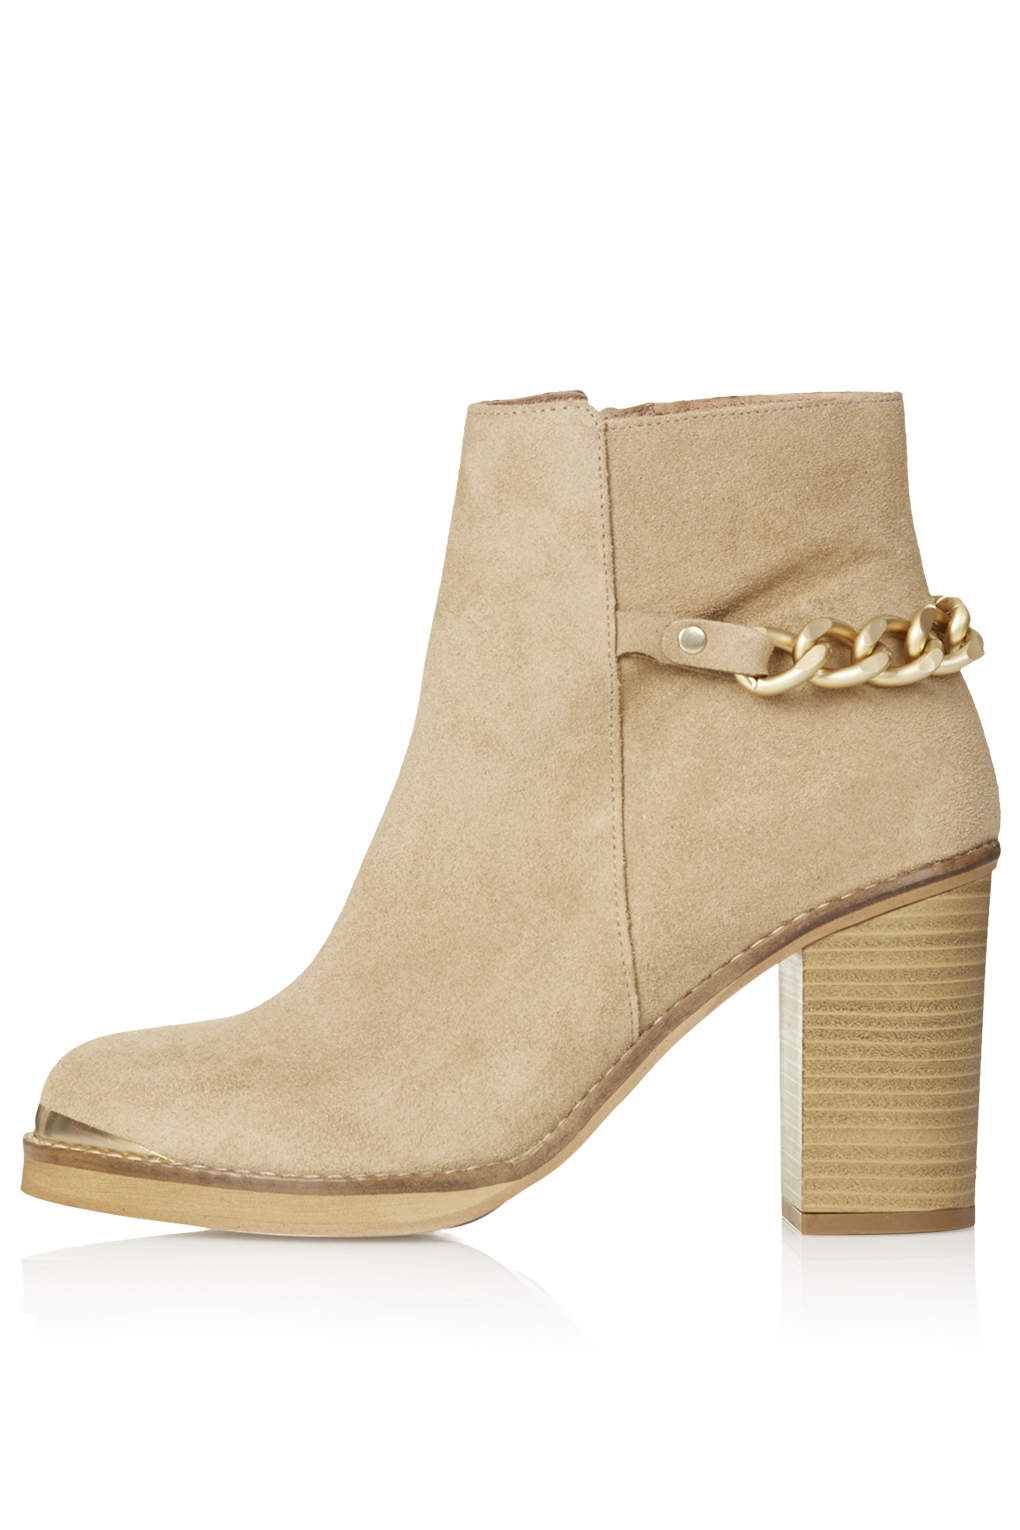 MERIT Heeled Leather Ankle Boots - Boots - Shoes